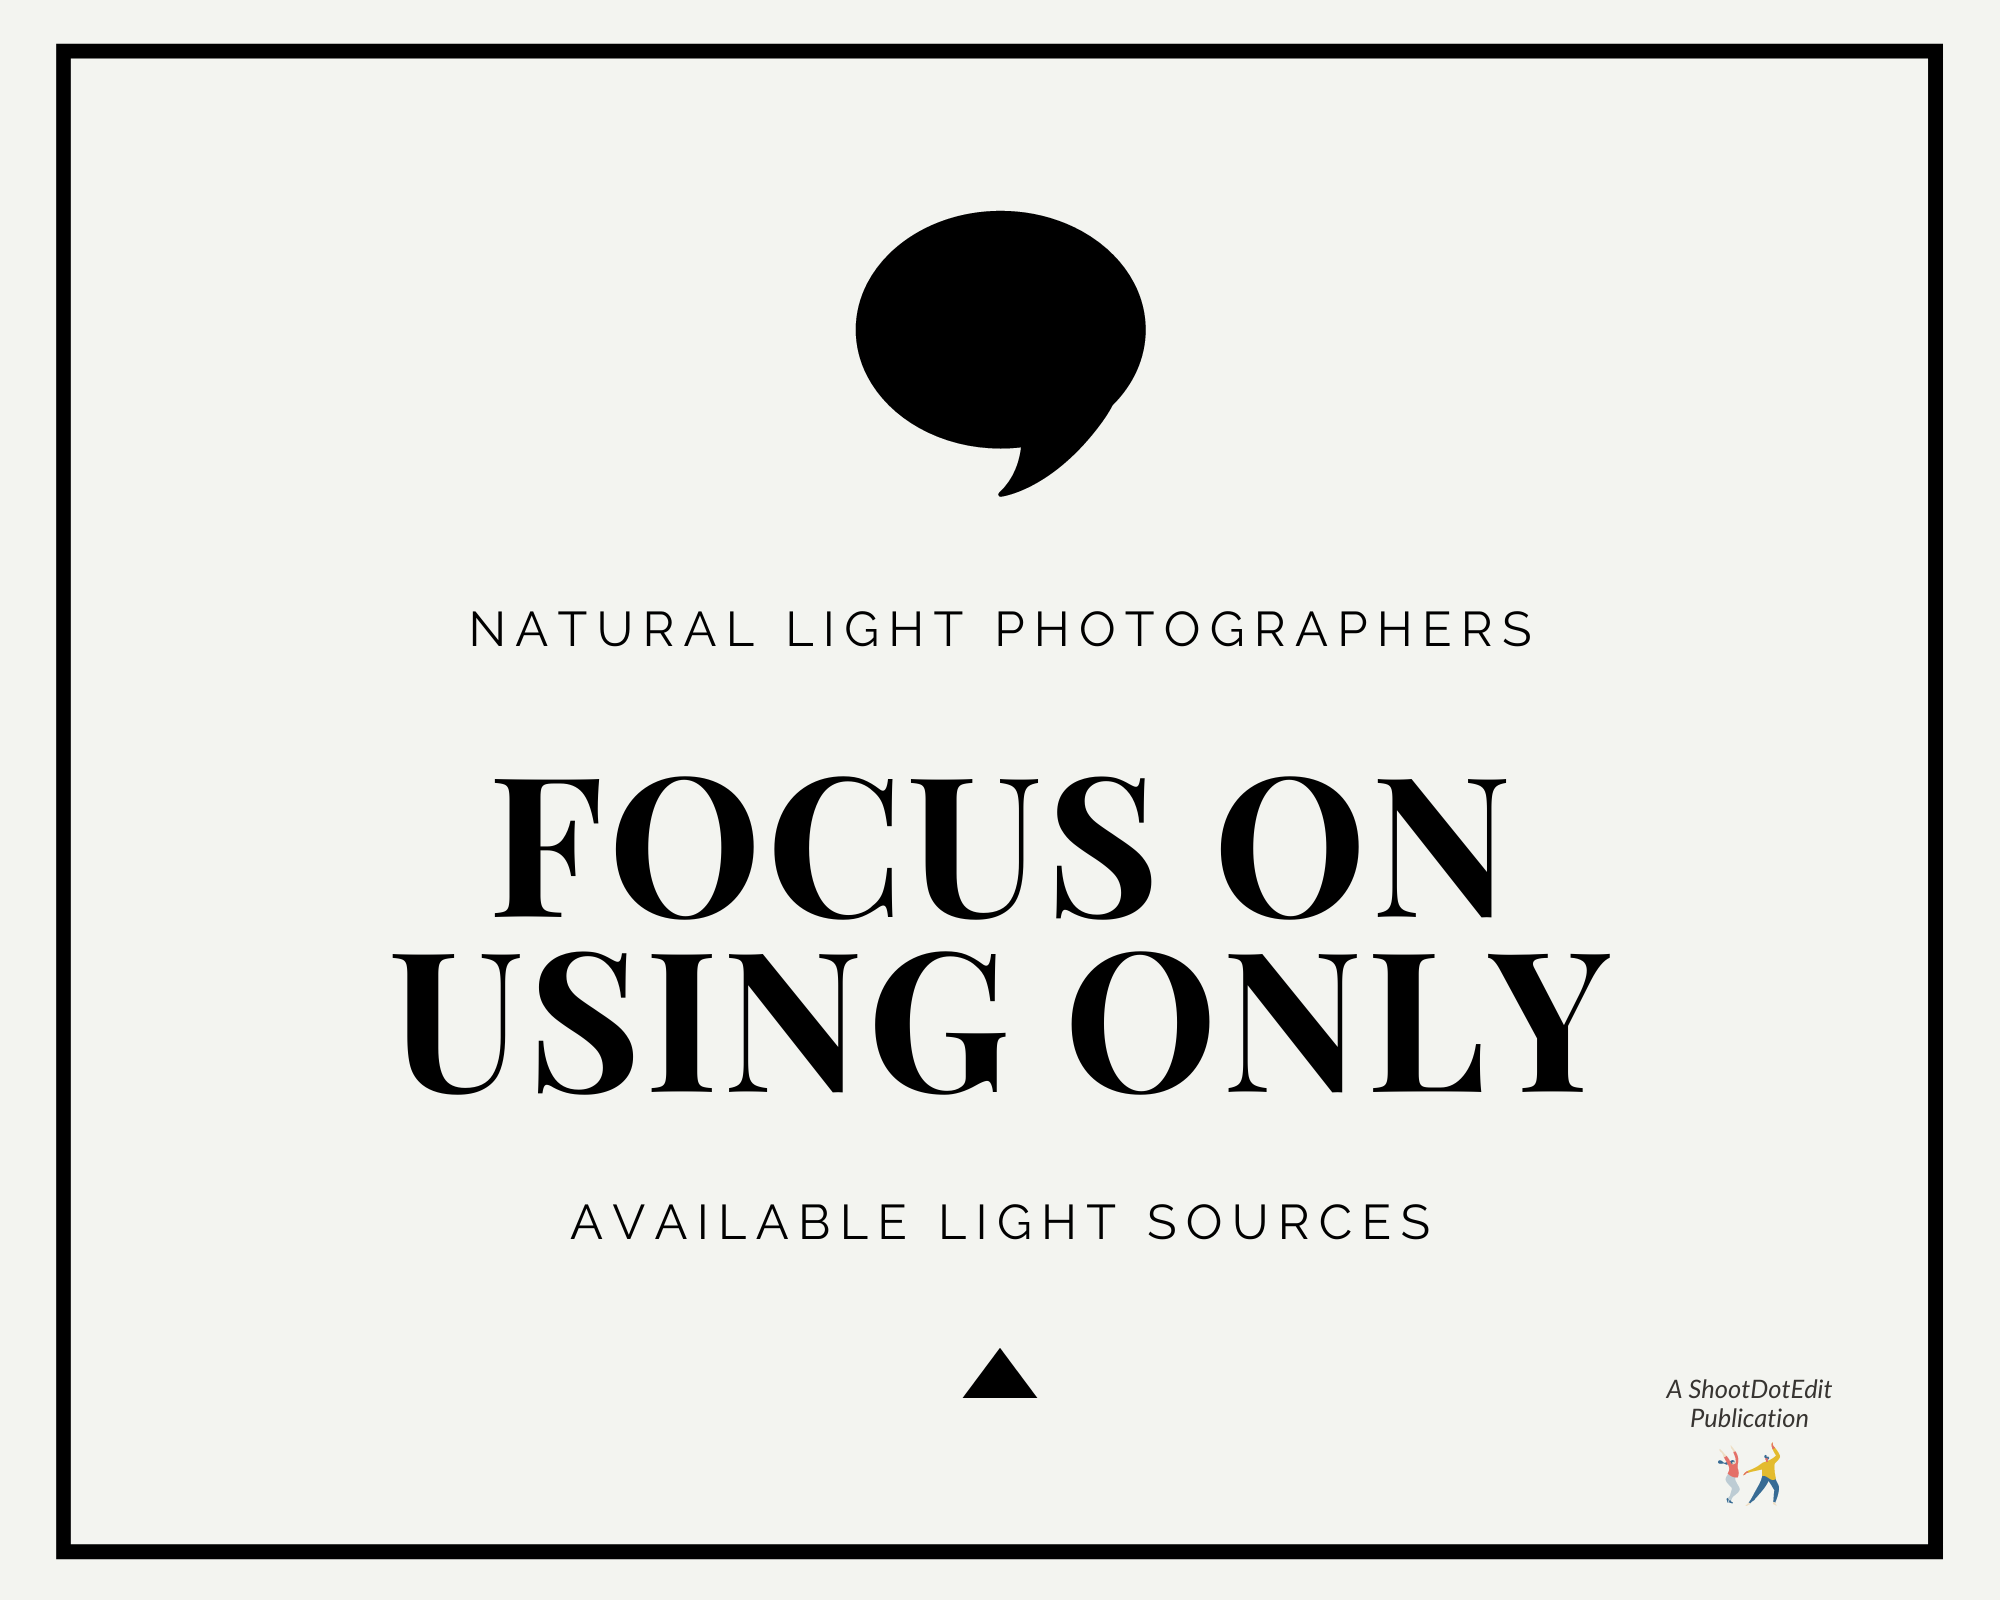 Infographic stating natural light photographers focus on using only available light sources